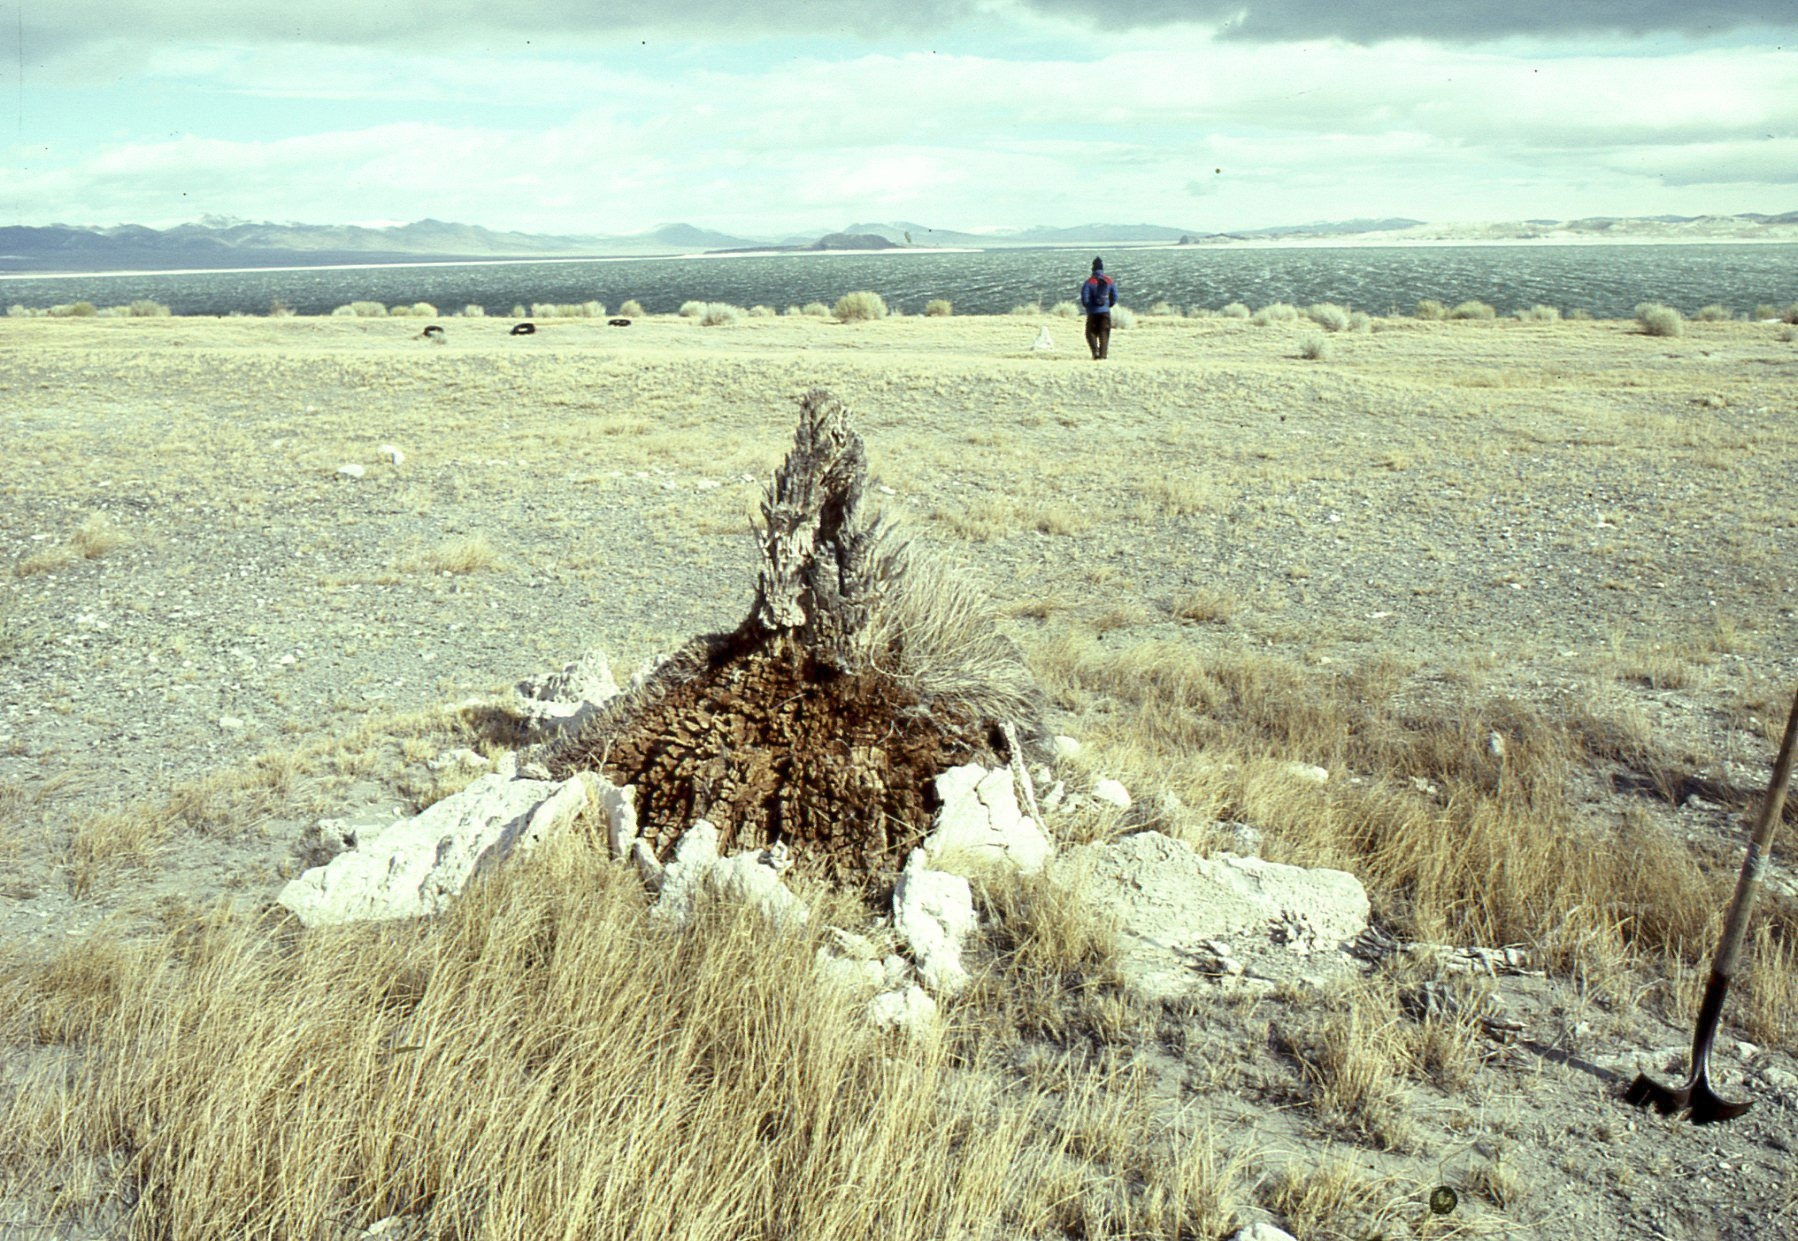 This tree stump rooted on the shorelands of Mono Lake in the Sierra Nevadas grew during severe droughts. California's current drought is in its fourth year, but new research indicates that the state and the rest of the West had ancient megadroughts that lasted decades and sometimes two centuries.